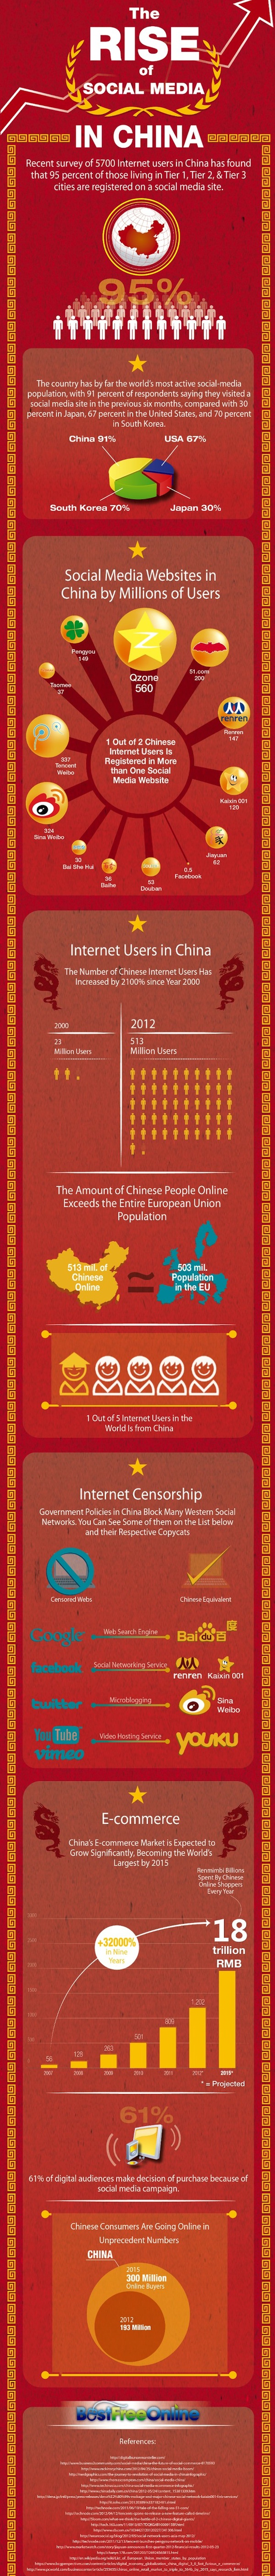 The-Rise-of-Social-Media-in-China-Infographic-2012